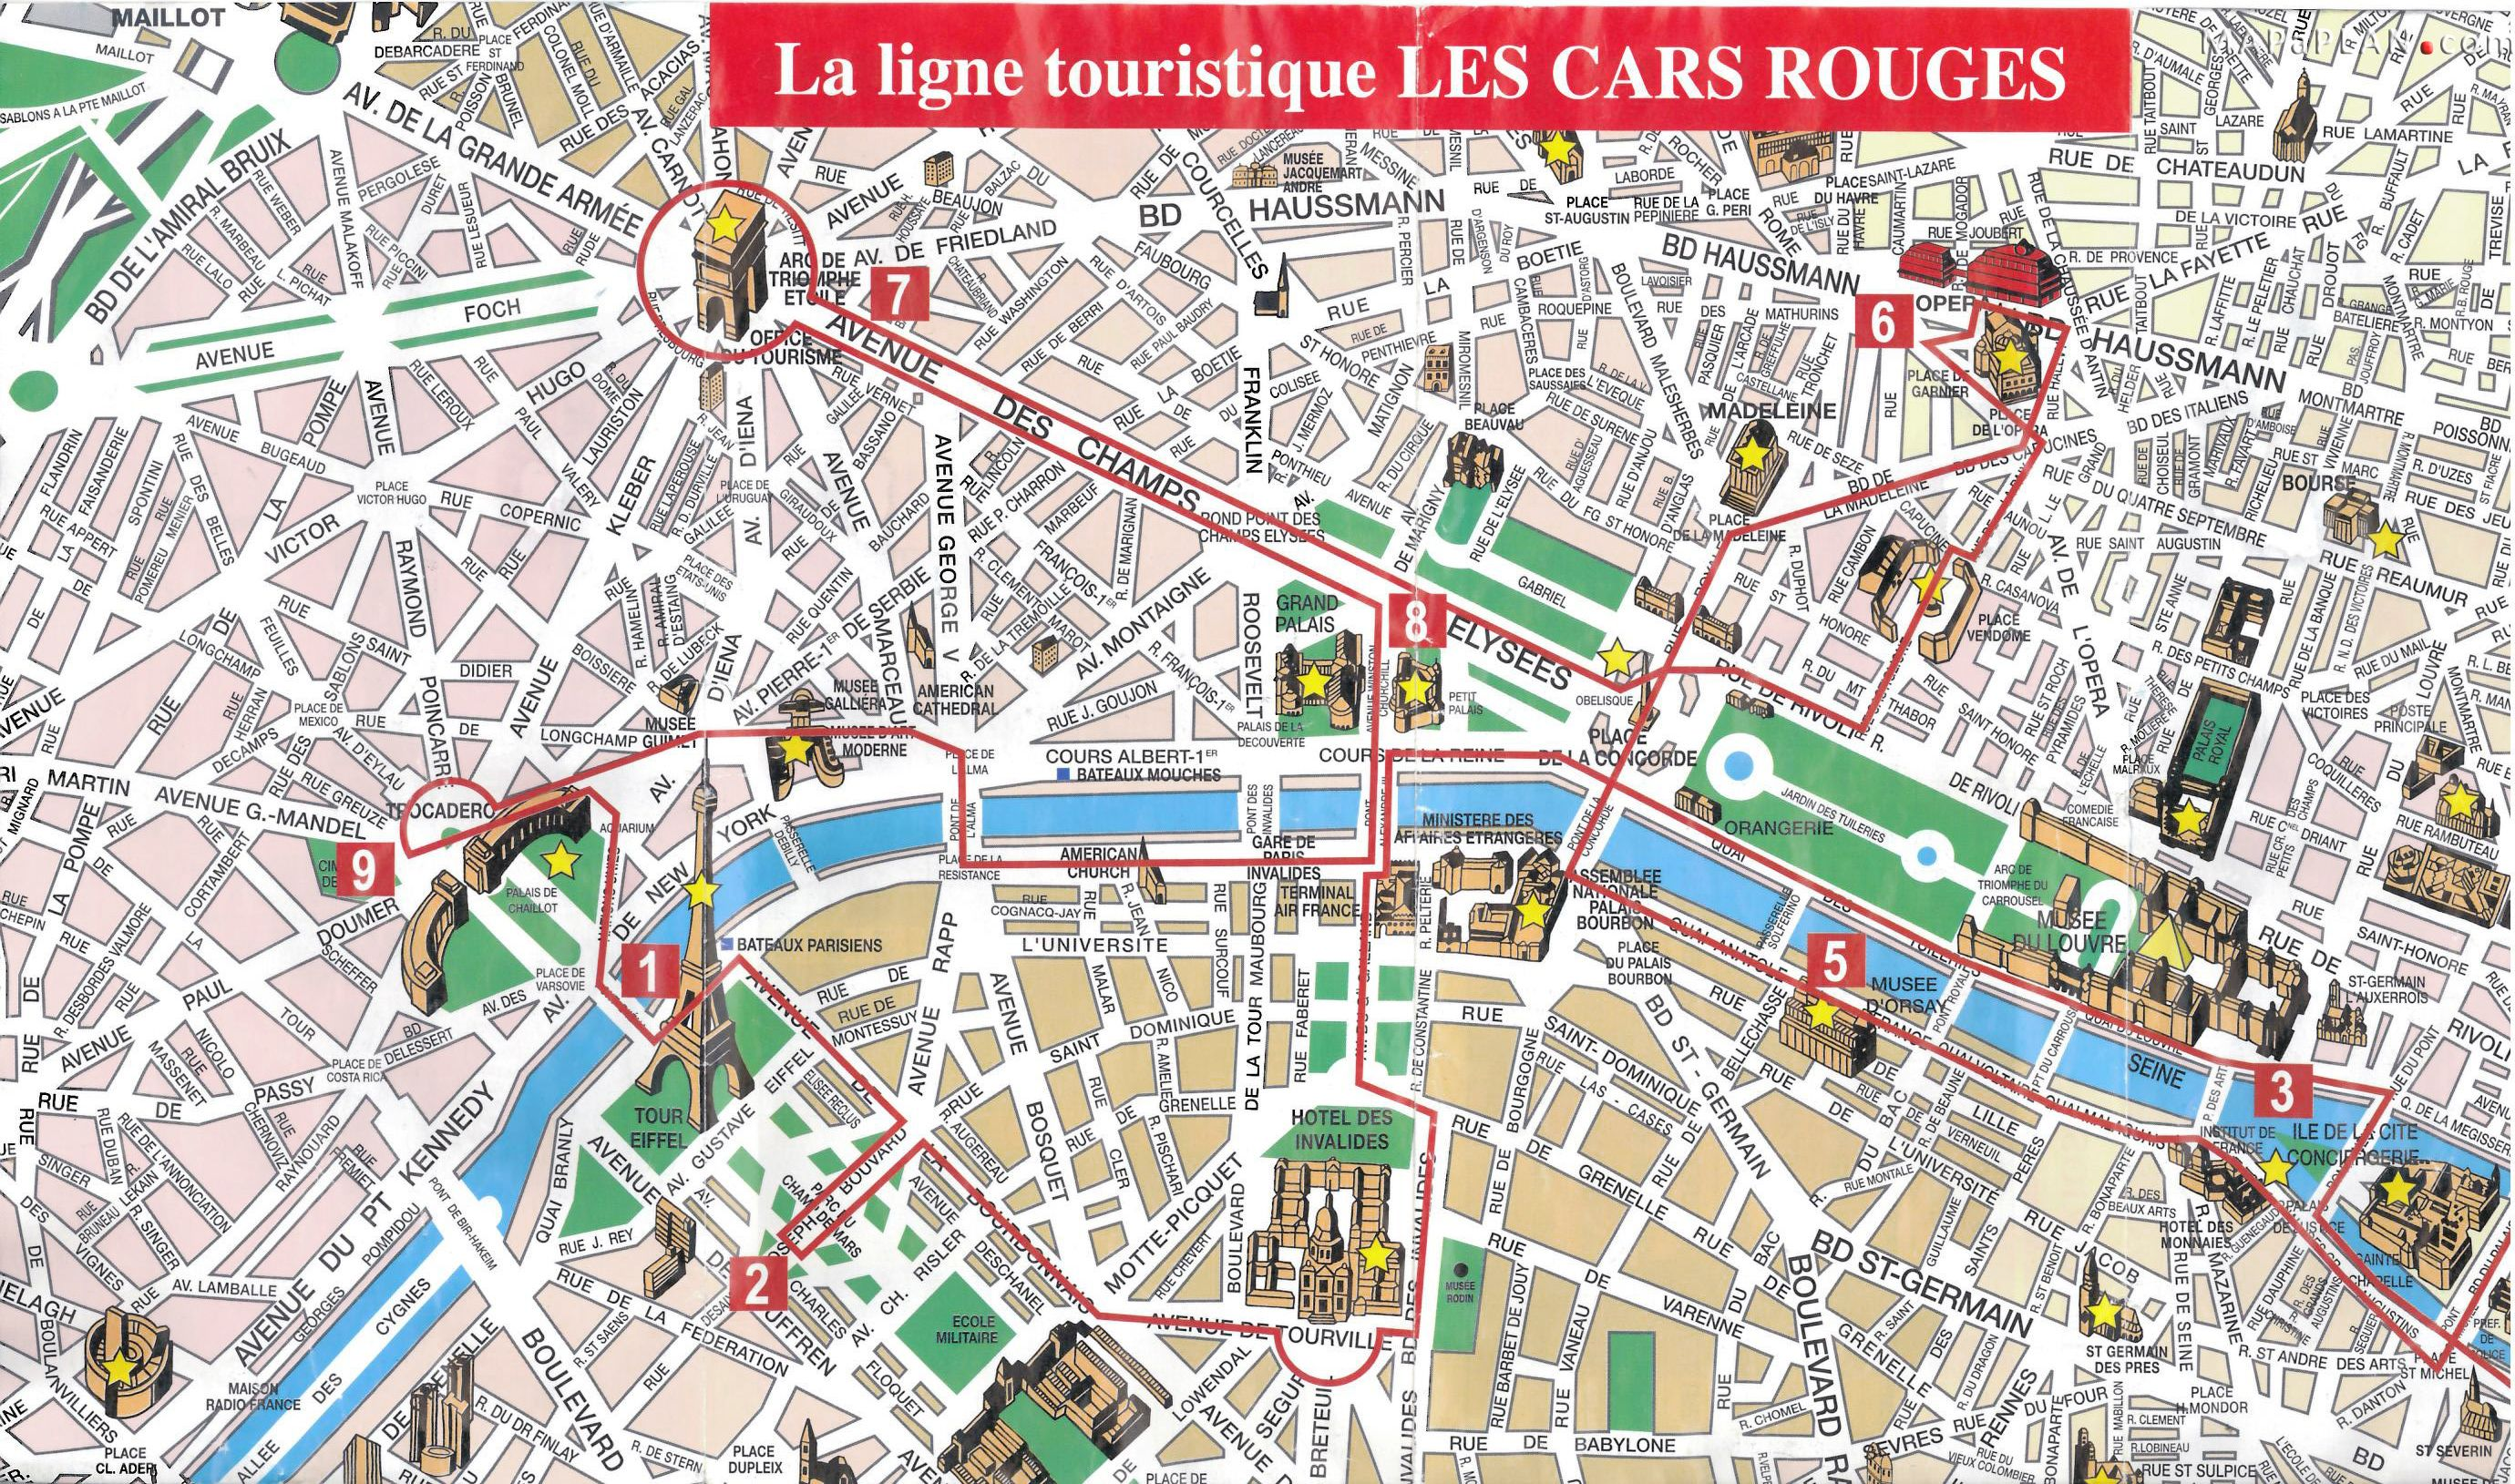 Paris Top Tourist Attractions Map 08 City Sightseeting